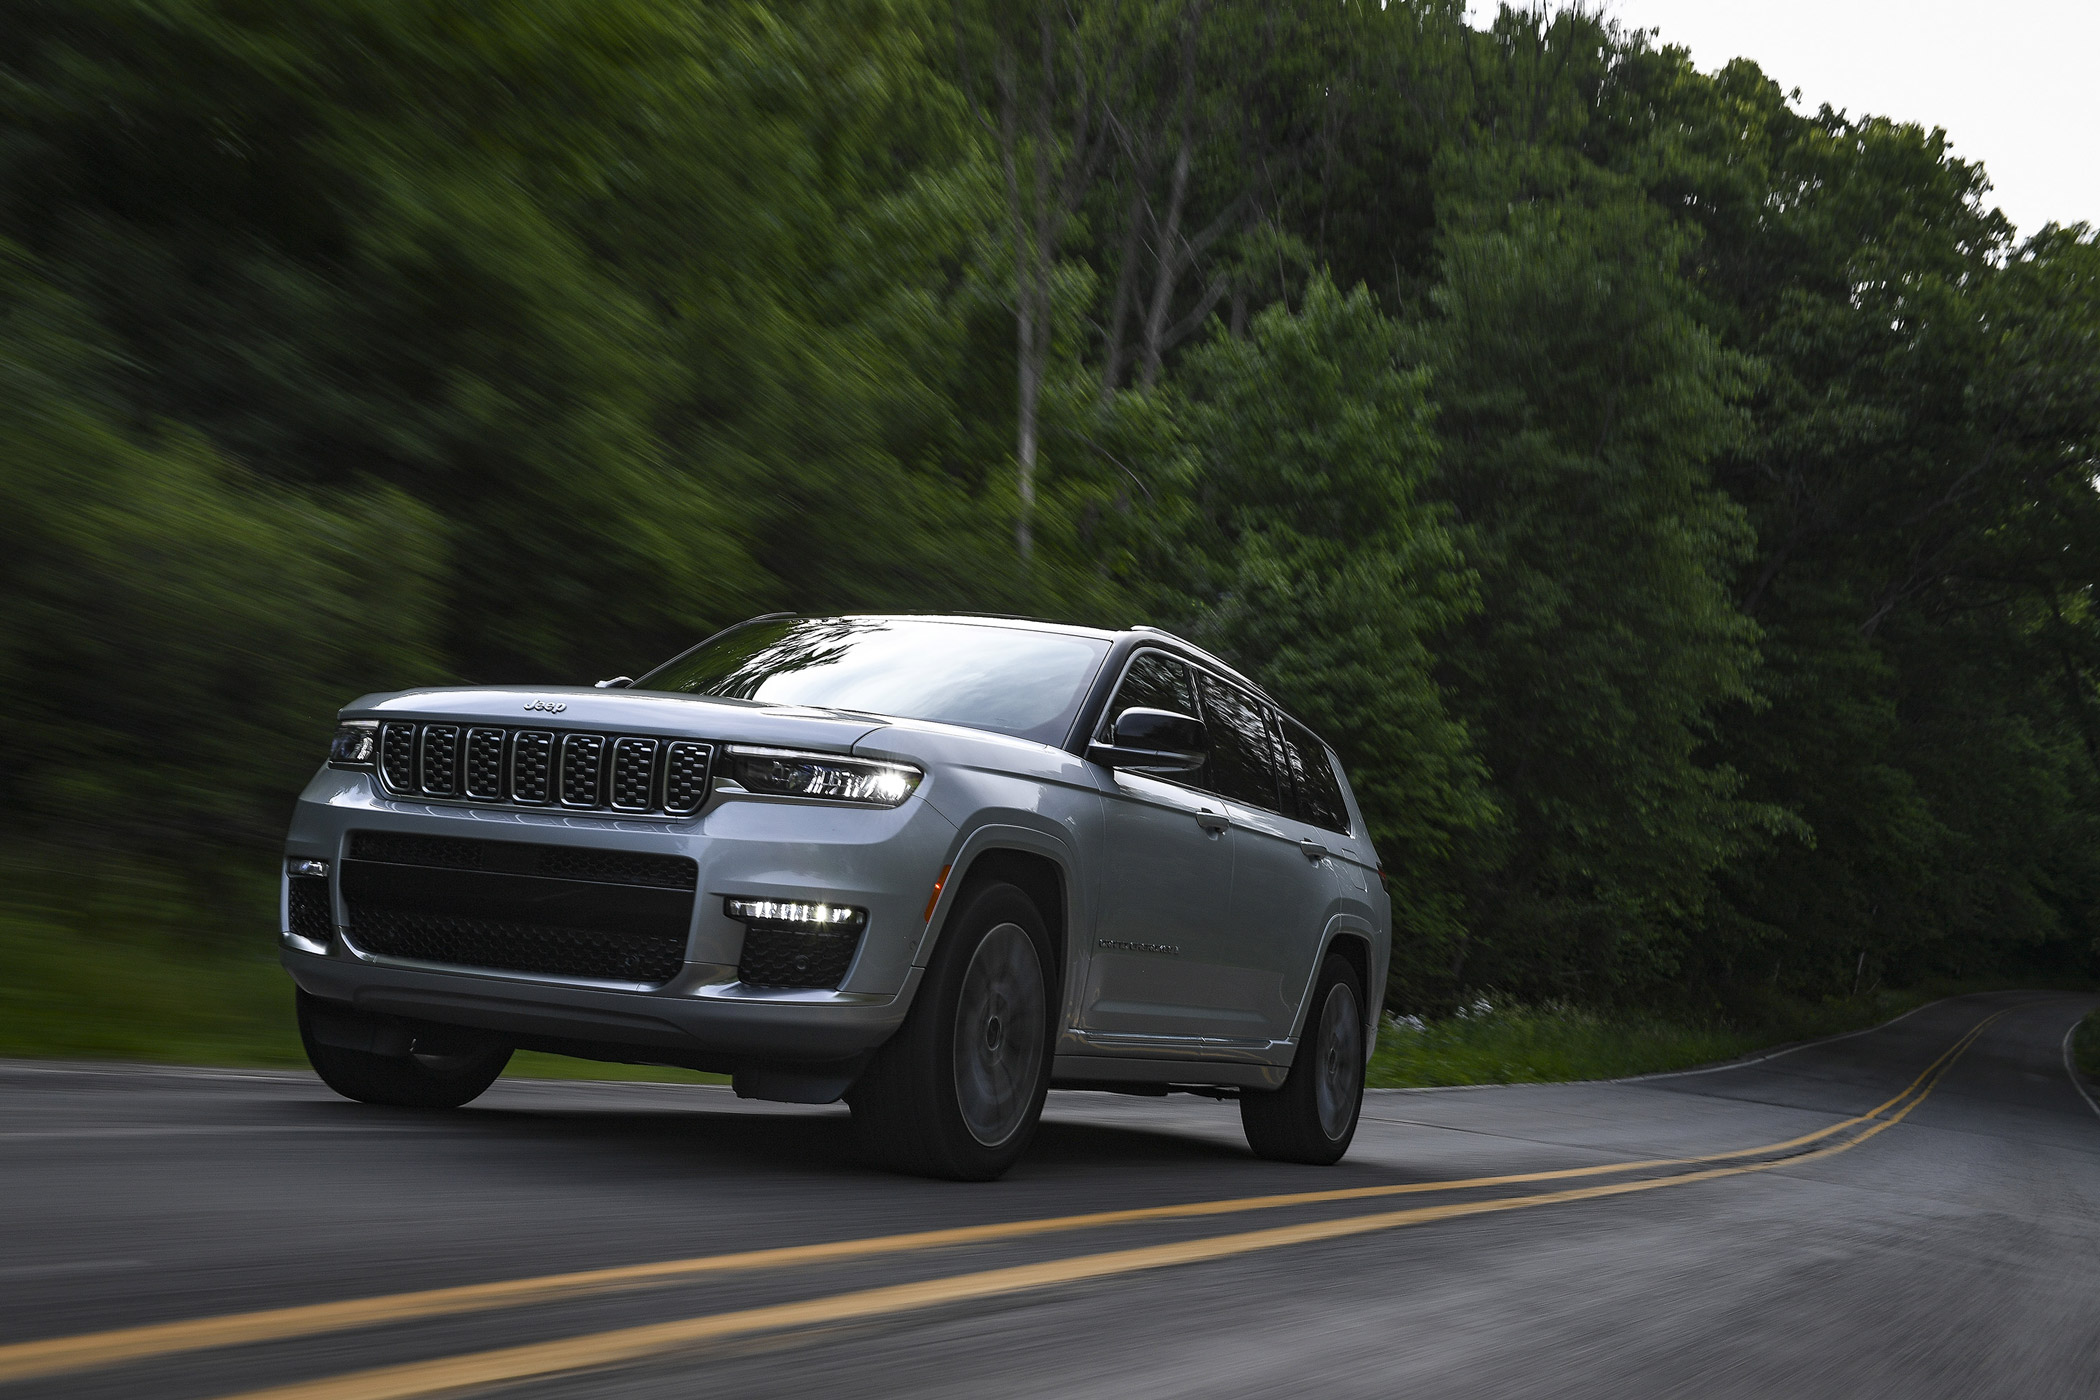 2021 Jeep Grand Cherokee L: Why It's the Ultimate Weekend Warrior Vehicle